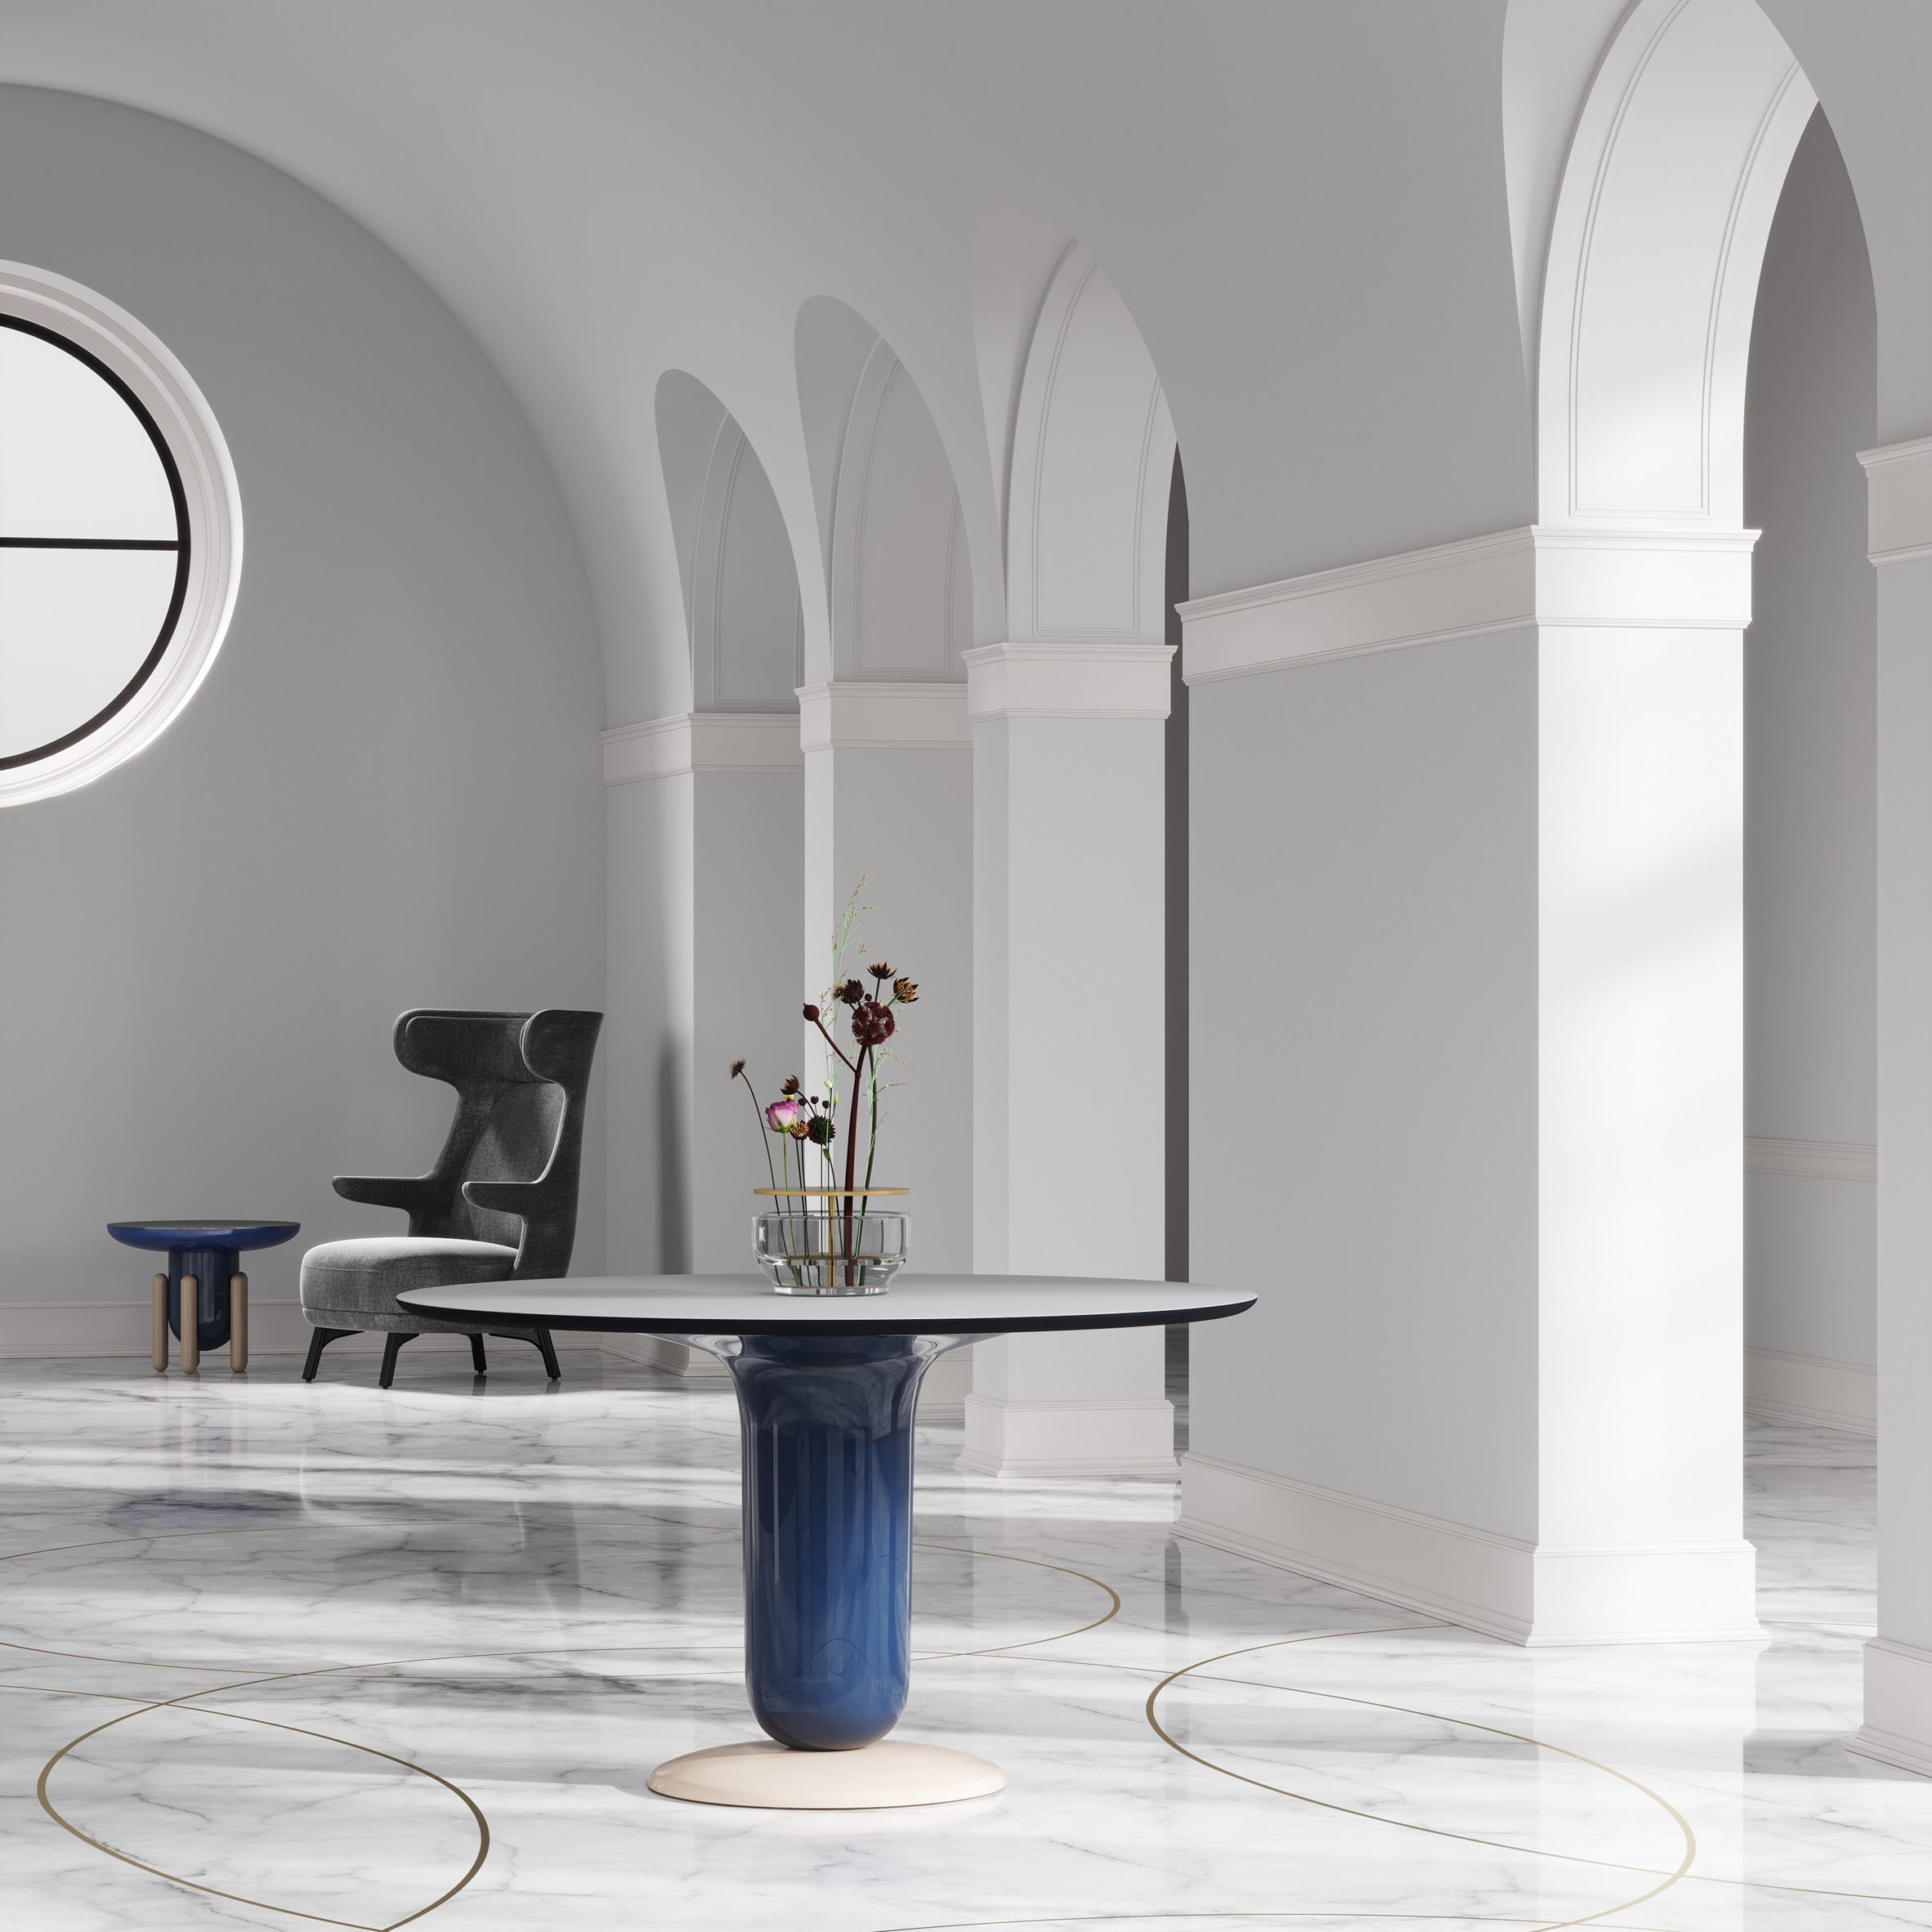 Explorer dining table by Jaime Hayon for BD Barcelona